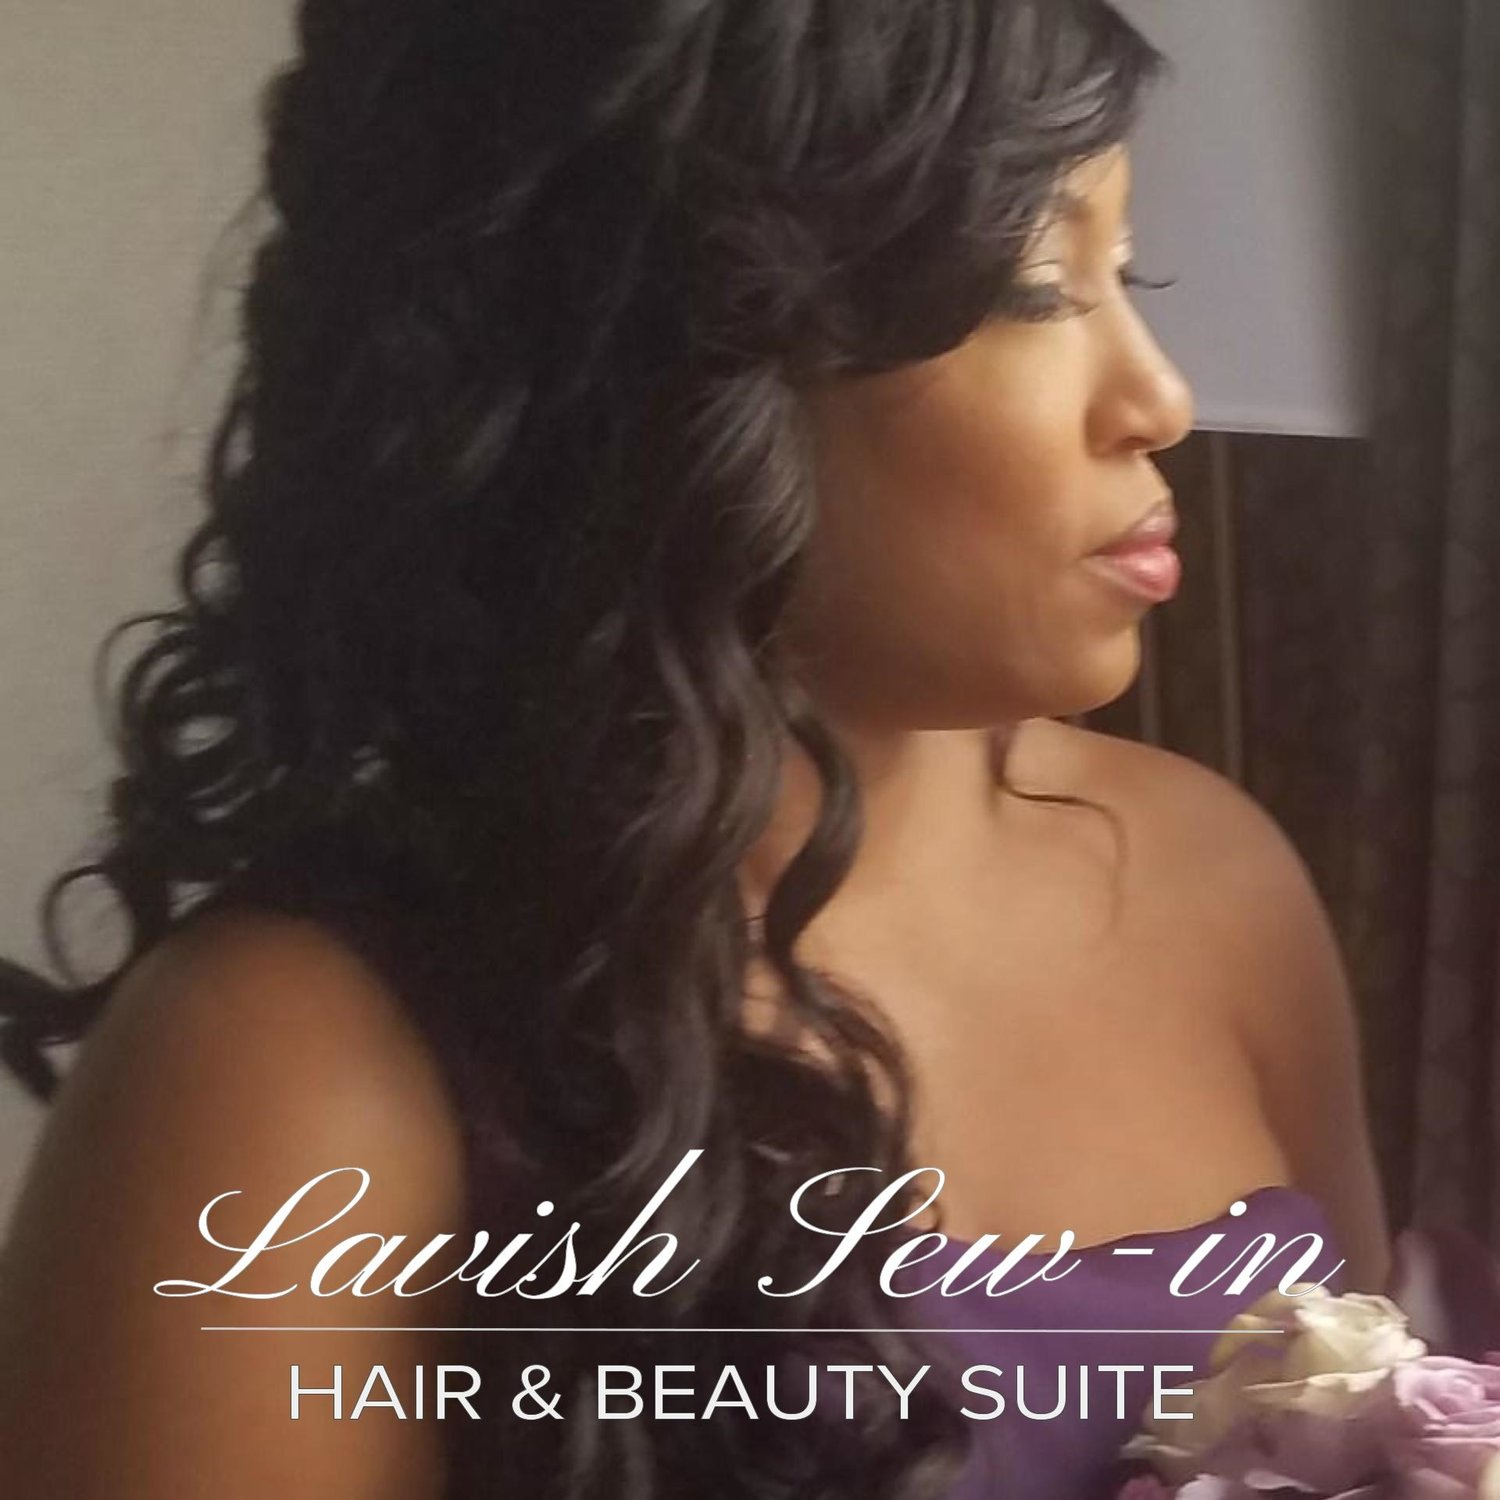 Lavish Sew-in